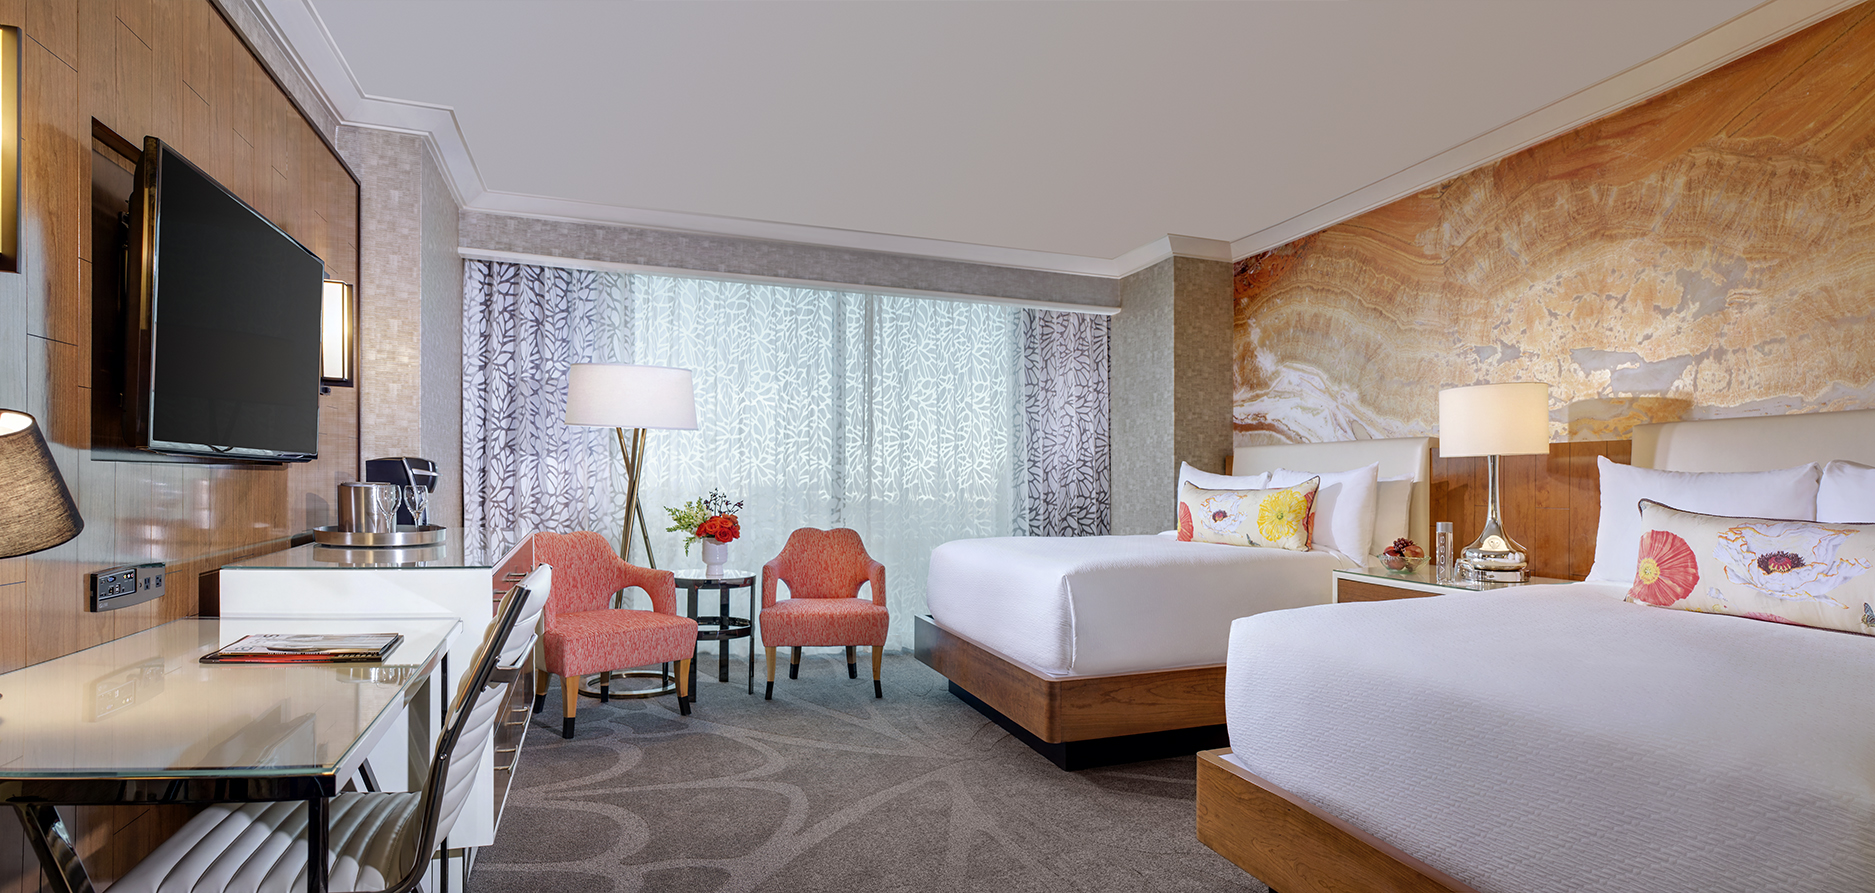 mandalay bay s remodeled hotel rooms give a beach vibe year round mandalay bay resort queen gold bed